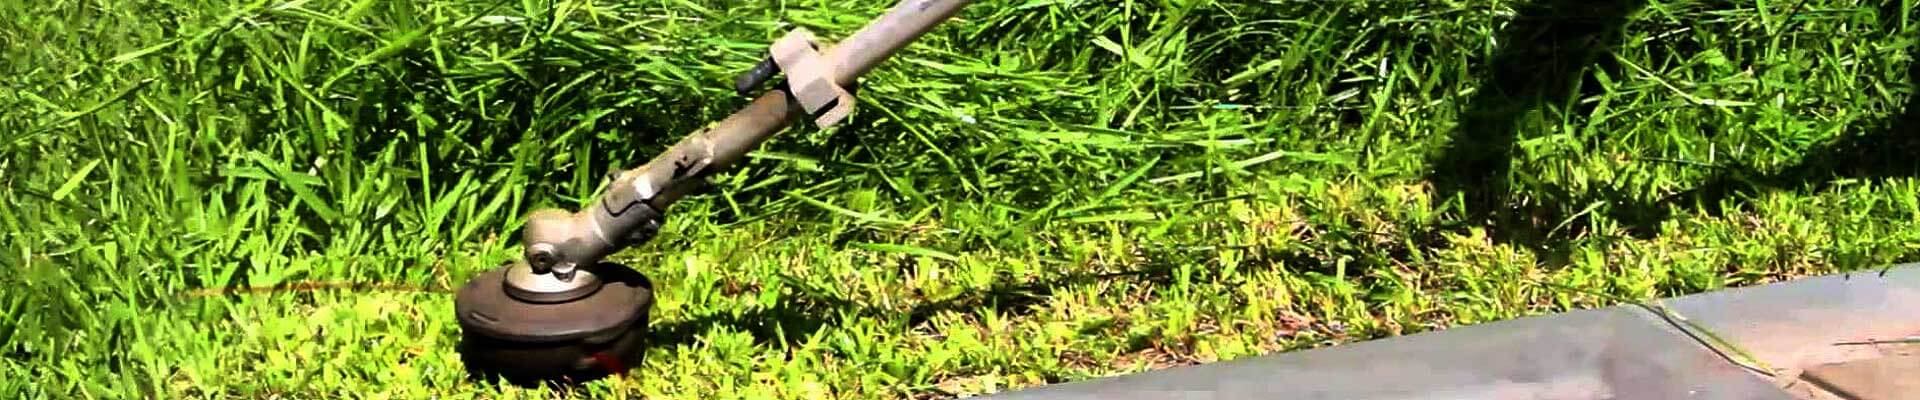 Weed Abatement Trimming